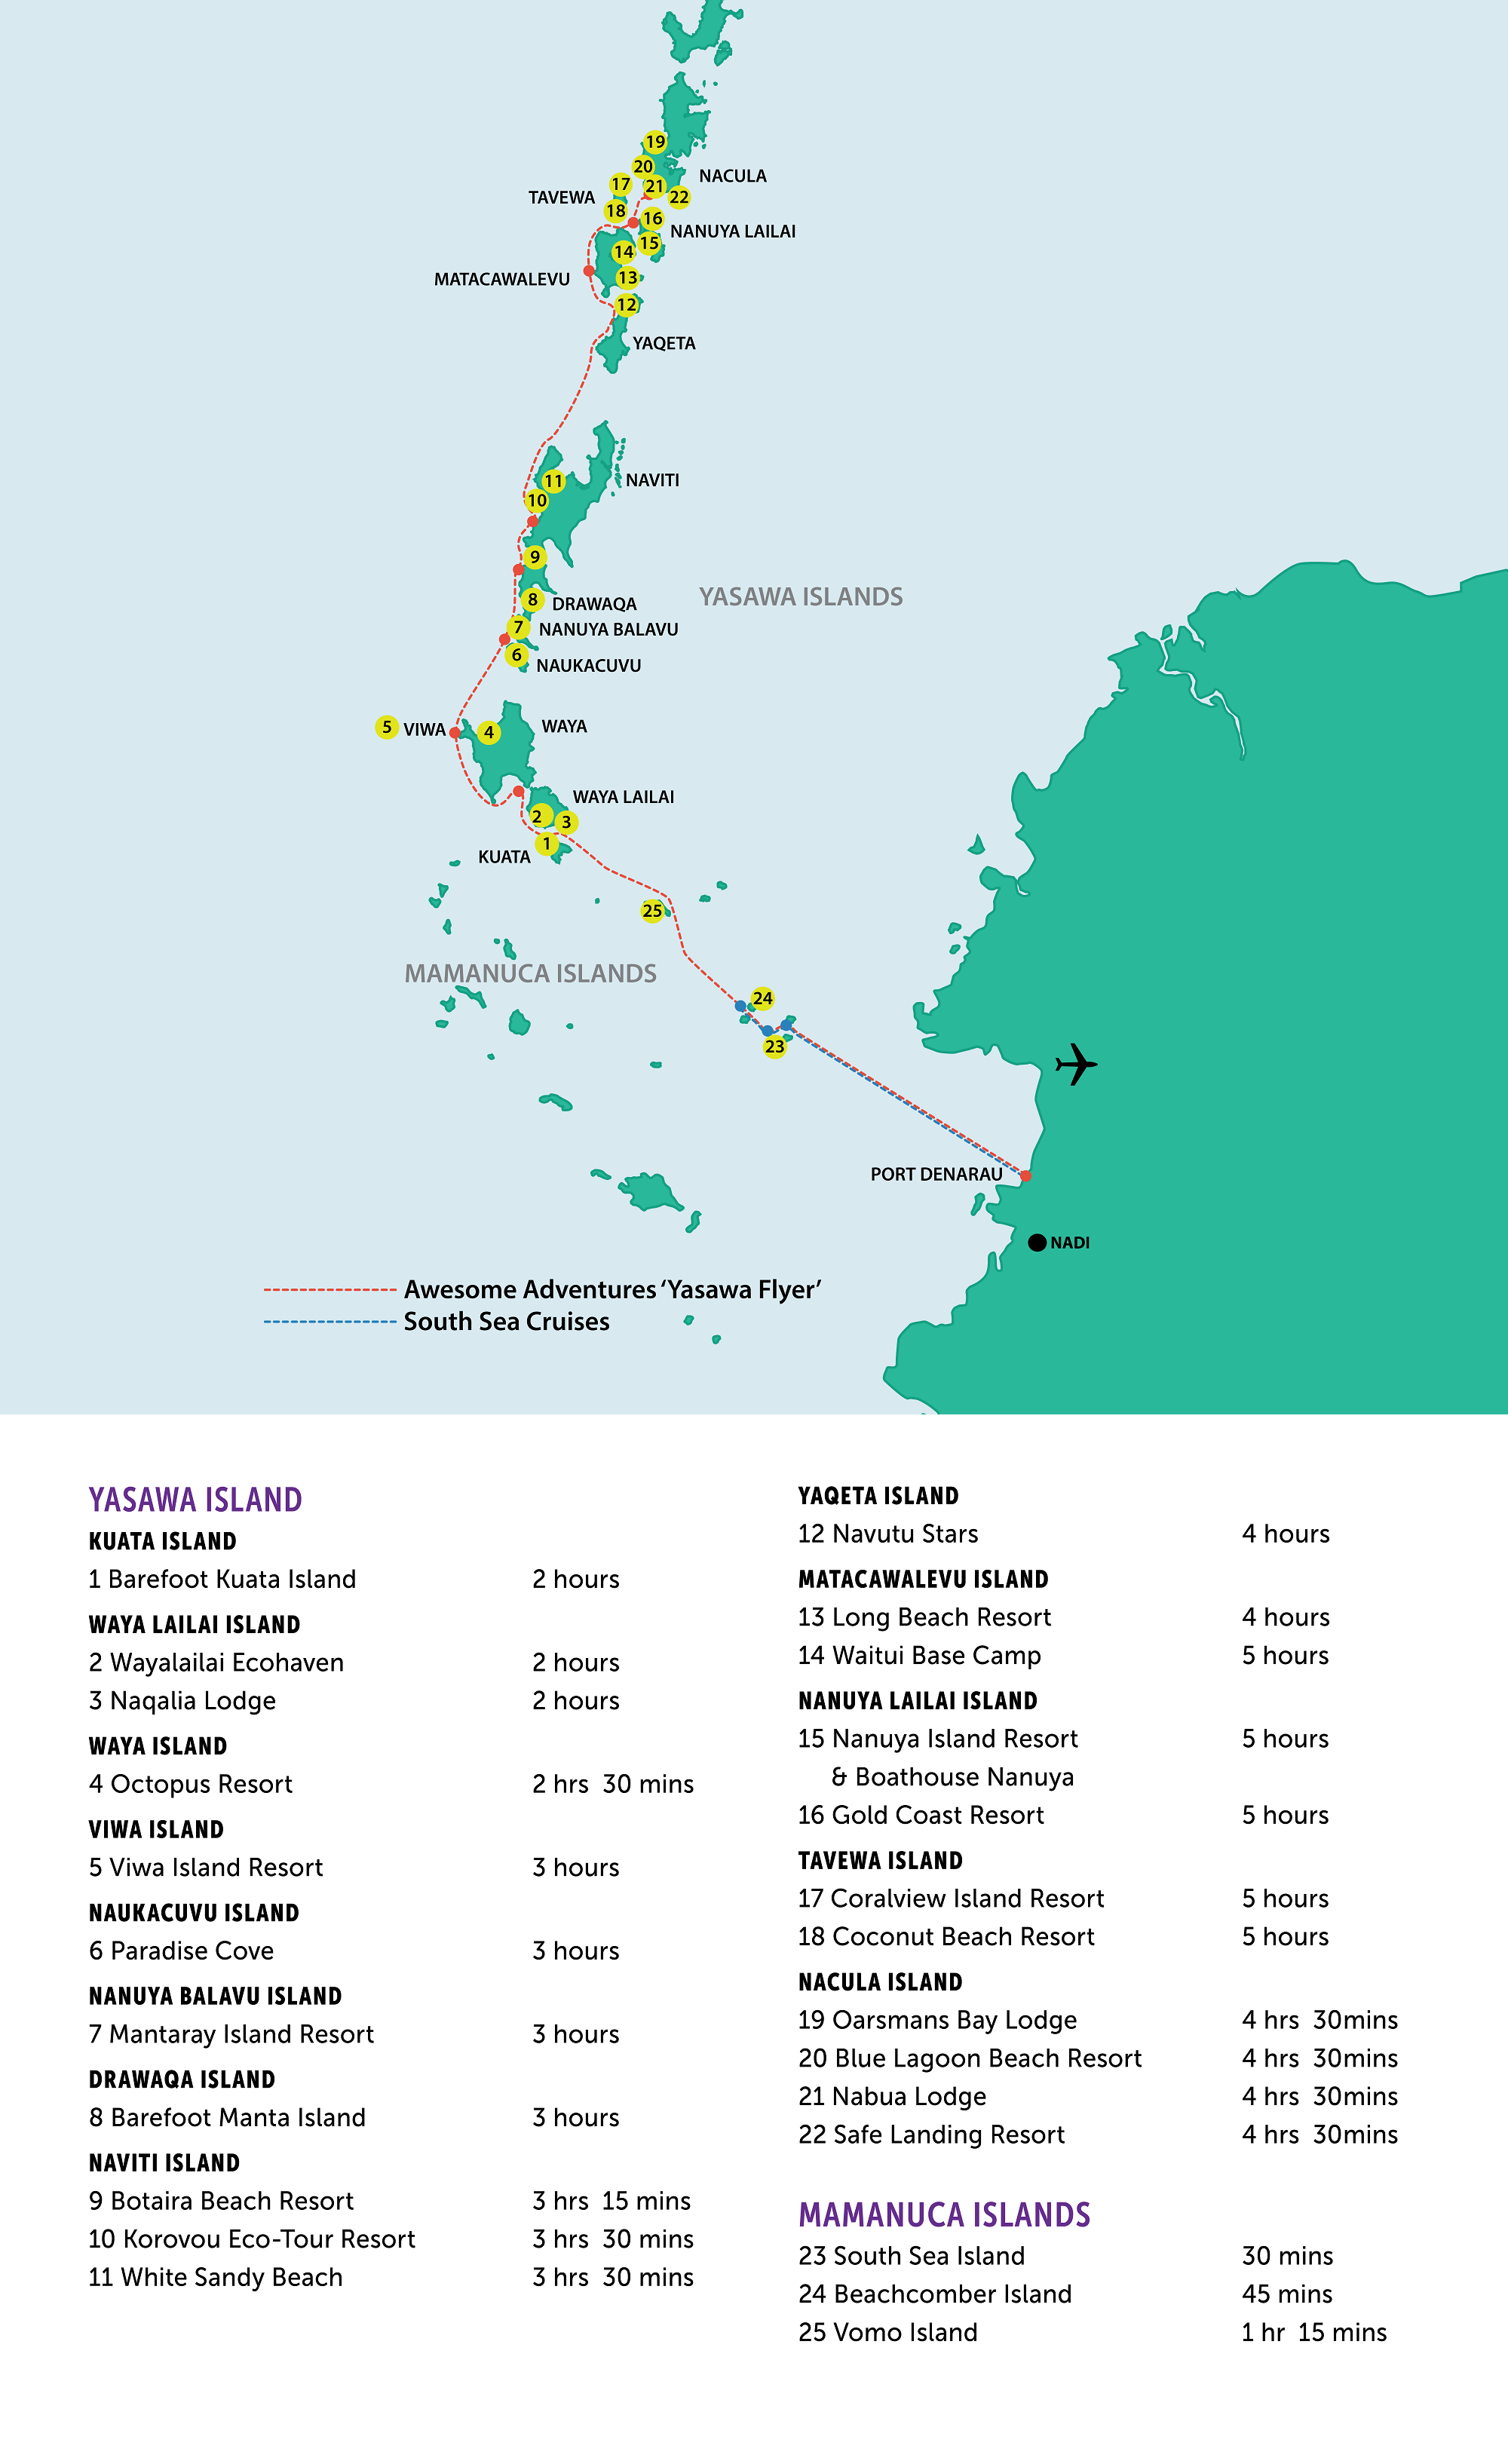 Yasawa Flyer Route Timetable 20 03 2018